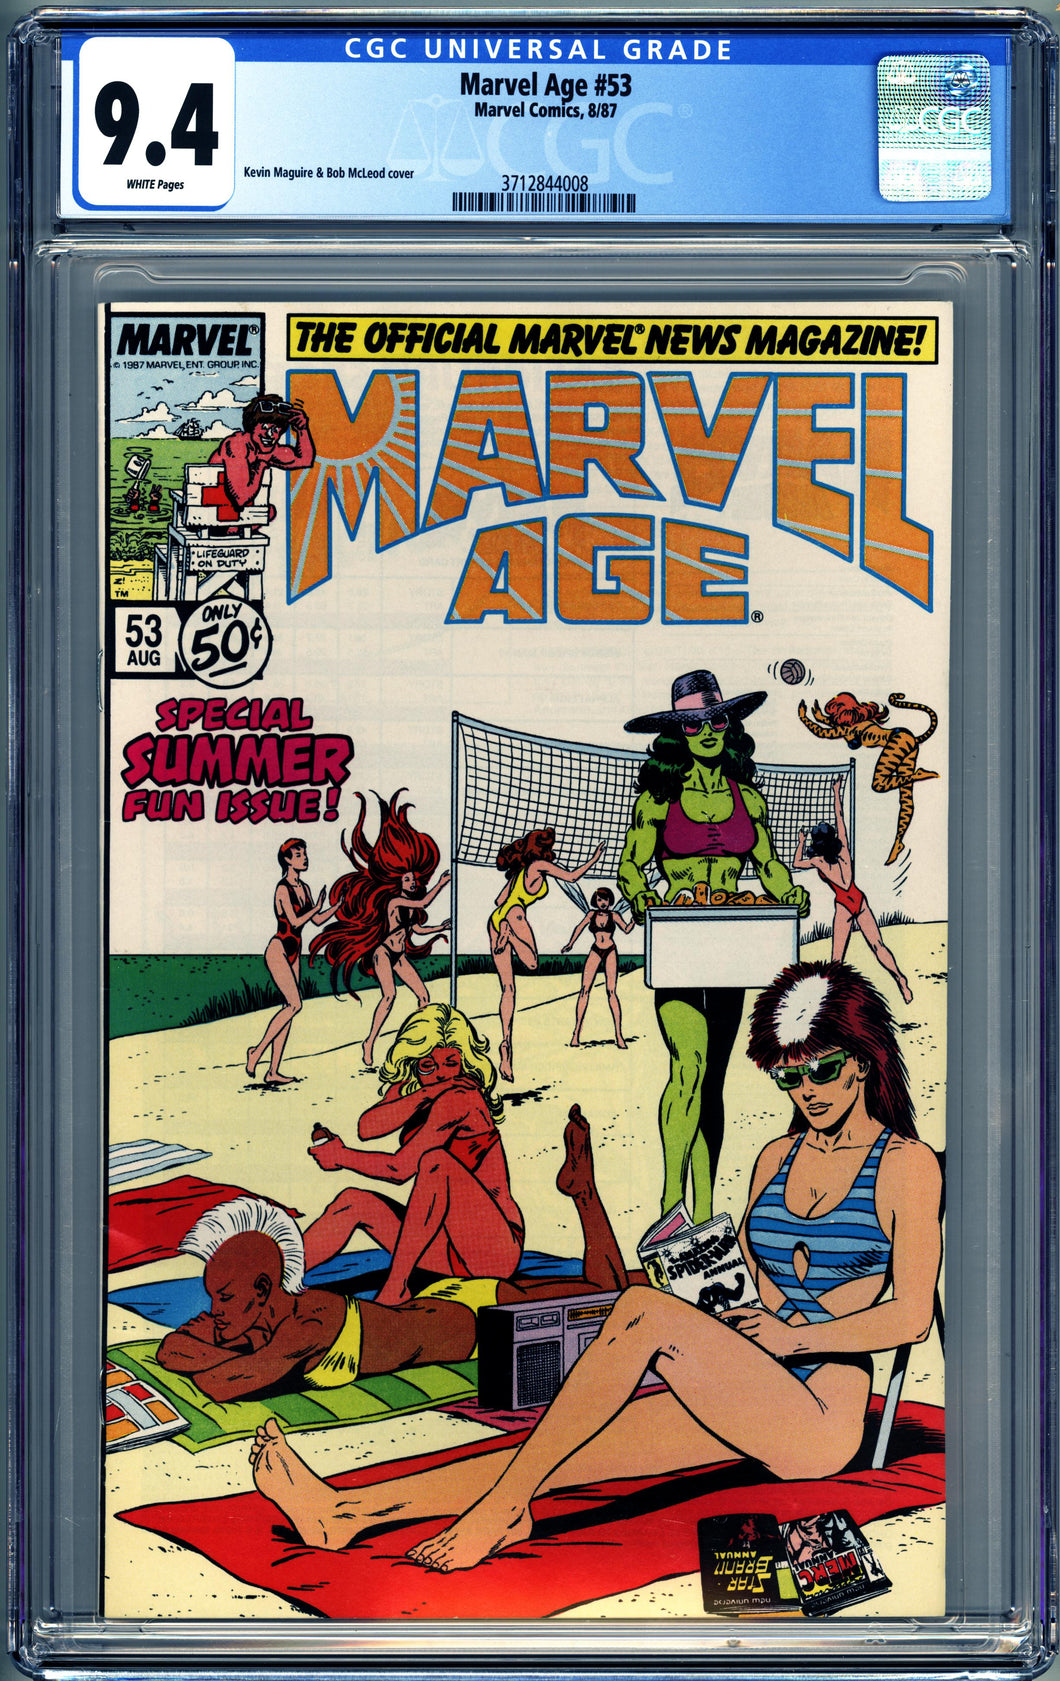 MARVEL AGE #41 (1987 Marvel) CGC GRADED 9.4 NM SWIMSUIT COVER